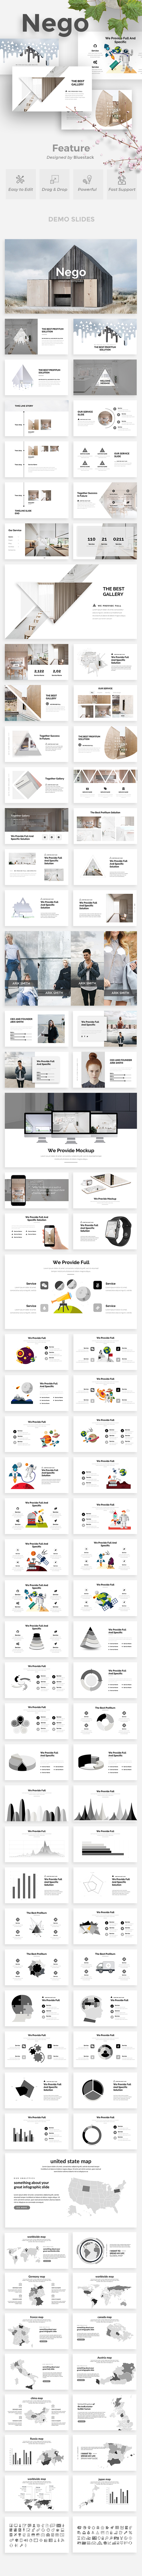 GraphicRiver Nego Creative Powerpoint Template 21197809